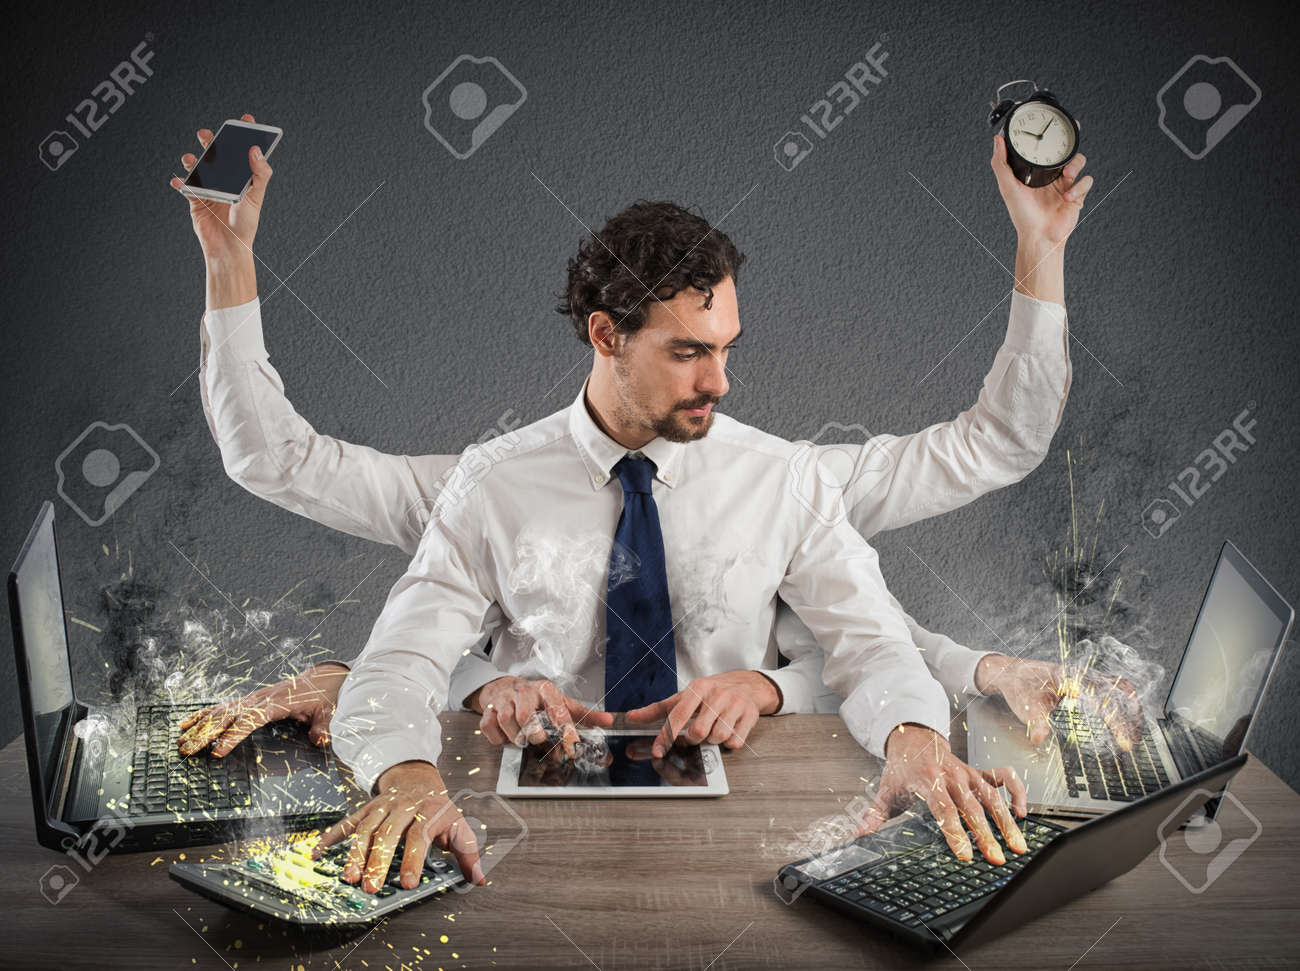 Businessman stressed out from too much work Standard-Bild - 67132430